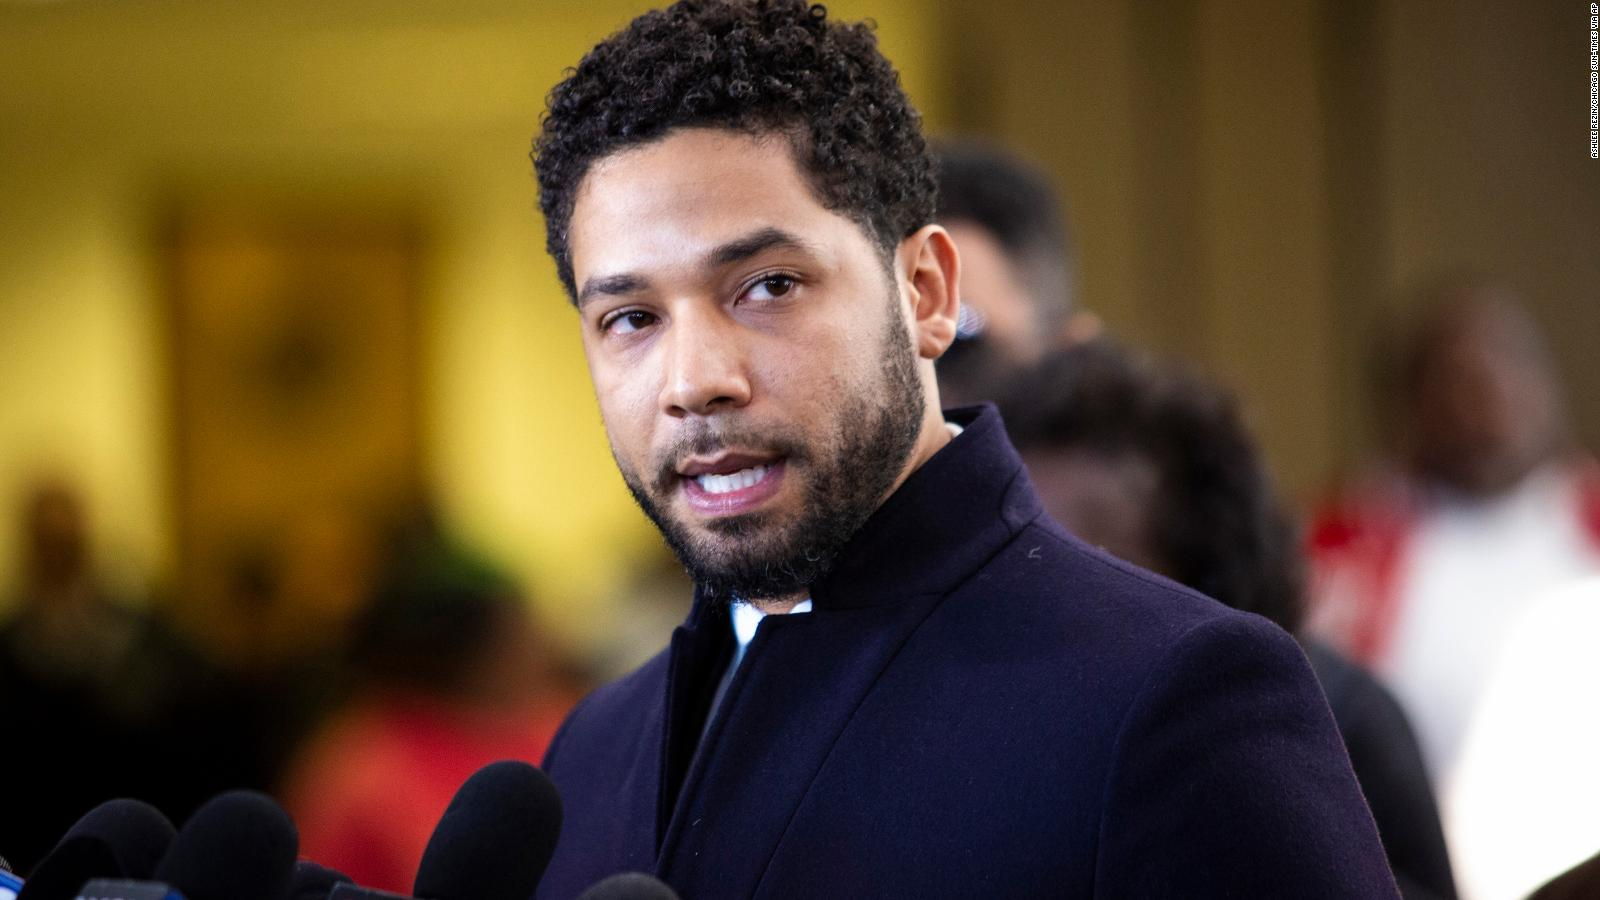 The many twists and turns in the Jussie Smollett investigation - CNN